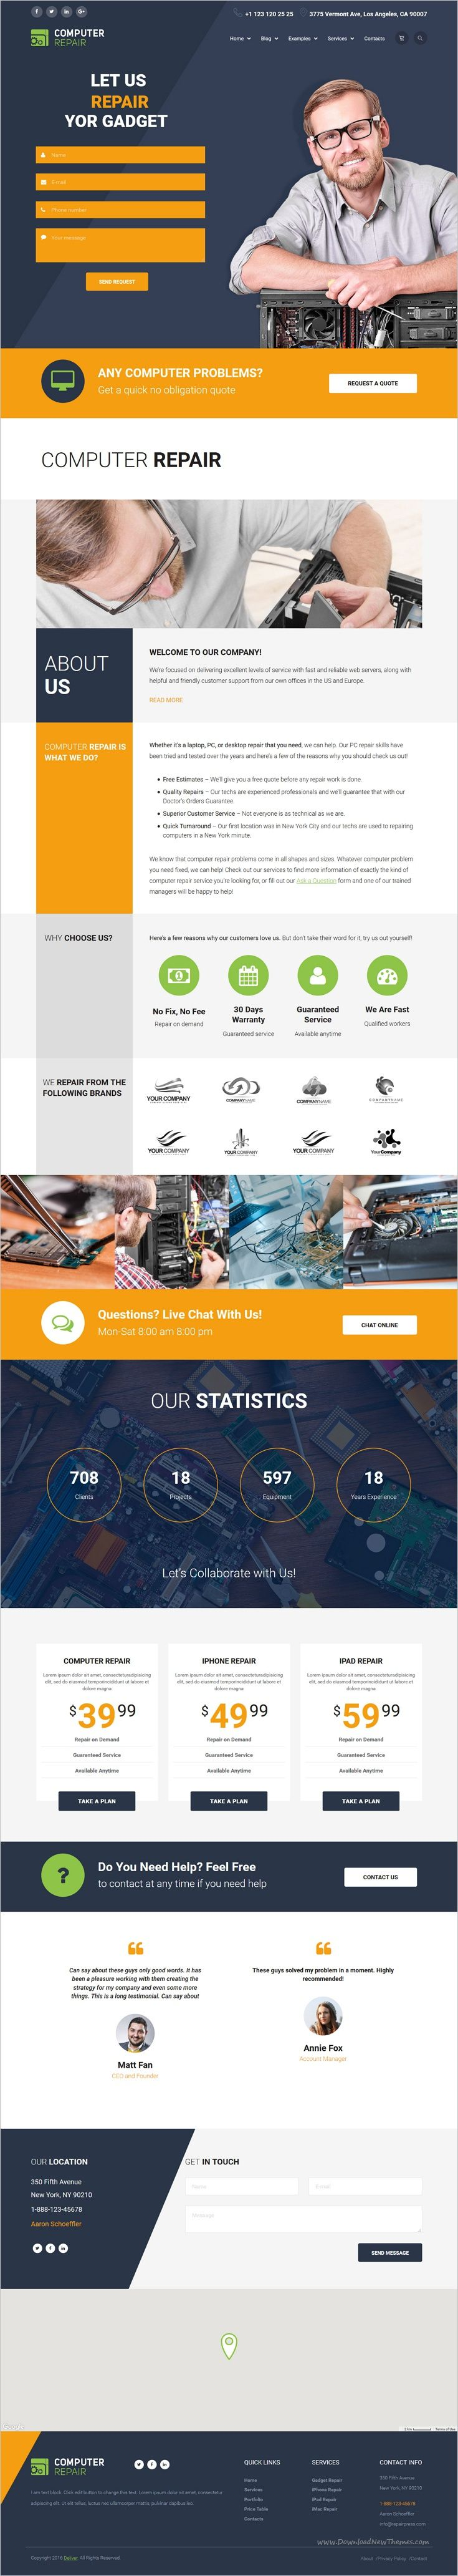 The Repair is a premium #WordPress #template developed for any #computer, mobile phones, tablet, Mac or electronic #repair companies website who wants a professional online presence download now➩ https://themeforest.net/item/the-repair-computer-mobile-and-electronics-repair-wordpress-theme/18200881?ref=Datasata